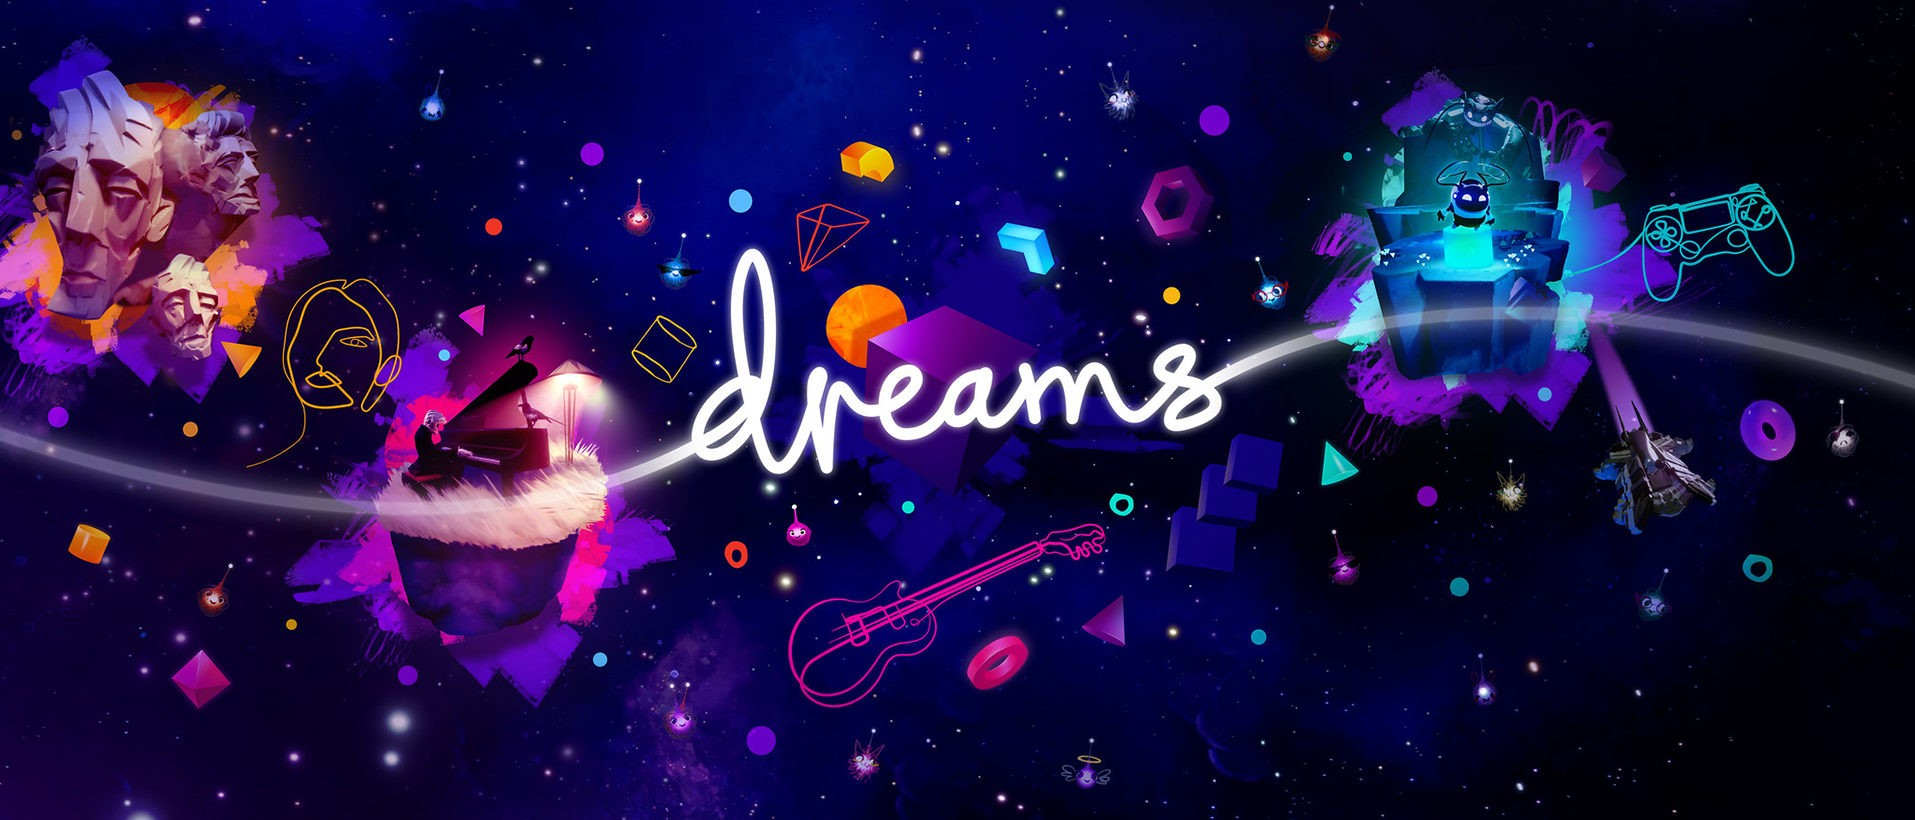 Dreams-ps4-review-media-molecule